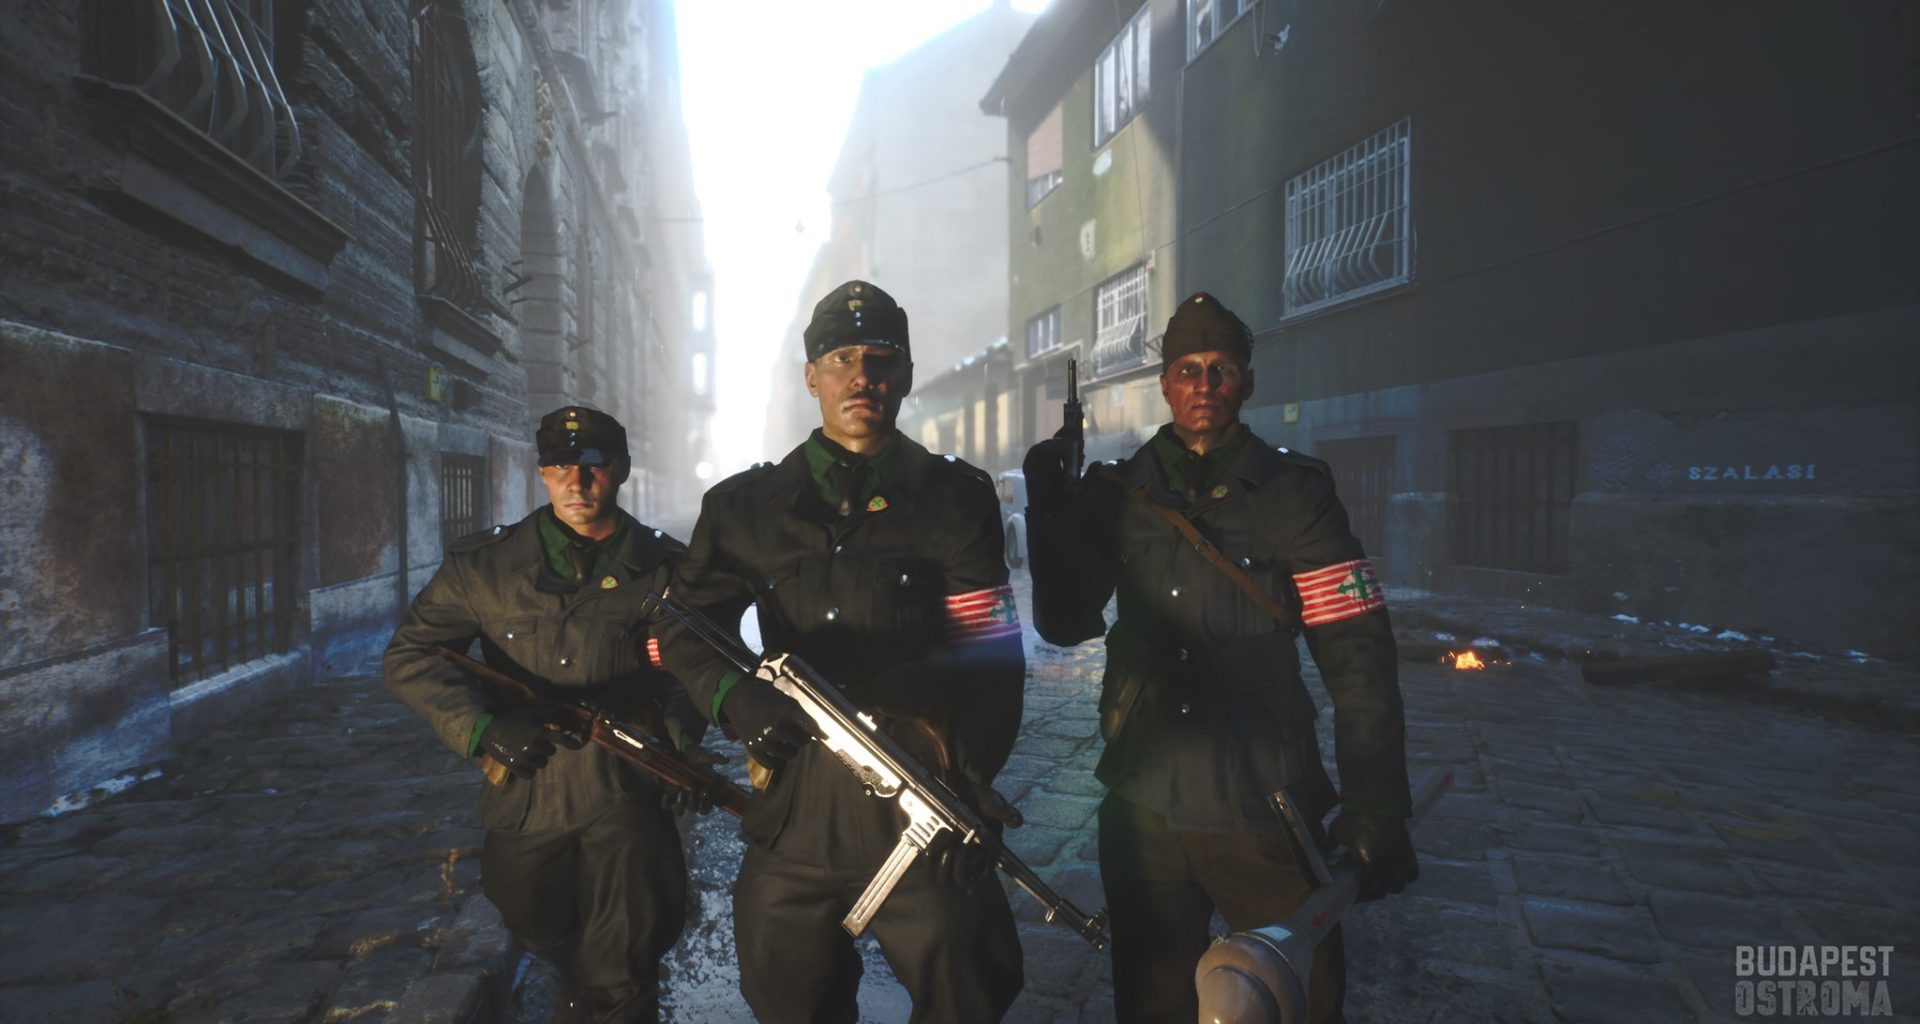 Budapest Ostroma Siege of Budapest WWII Videogame